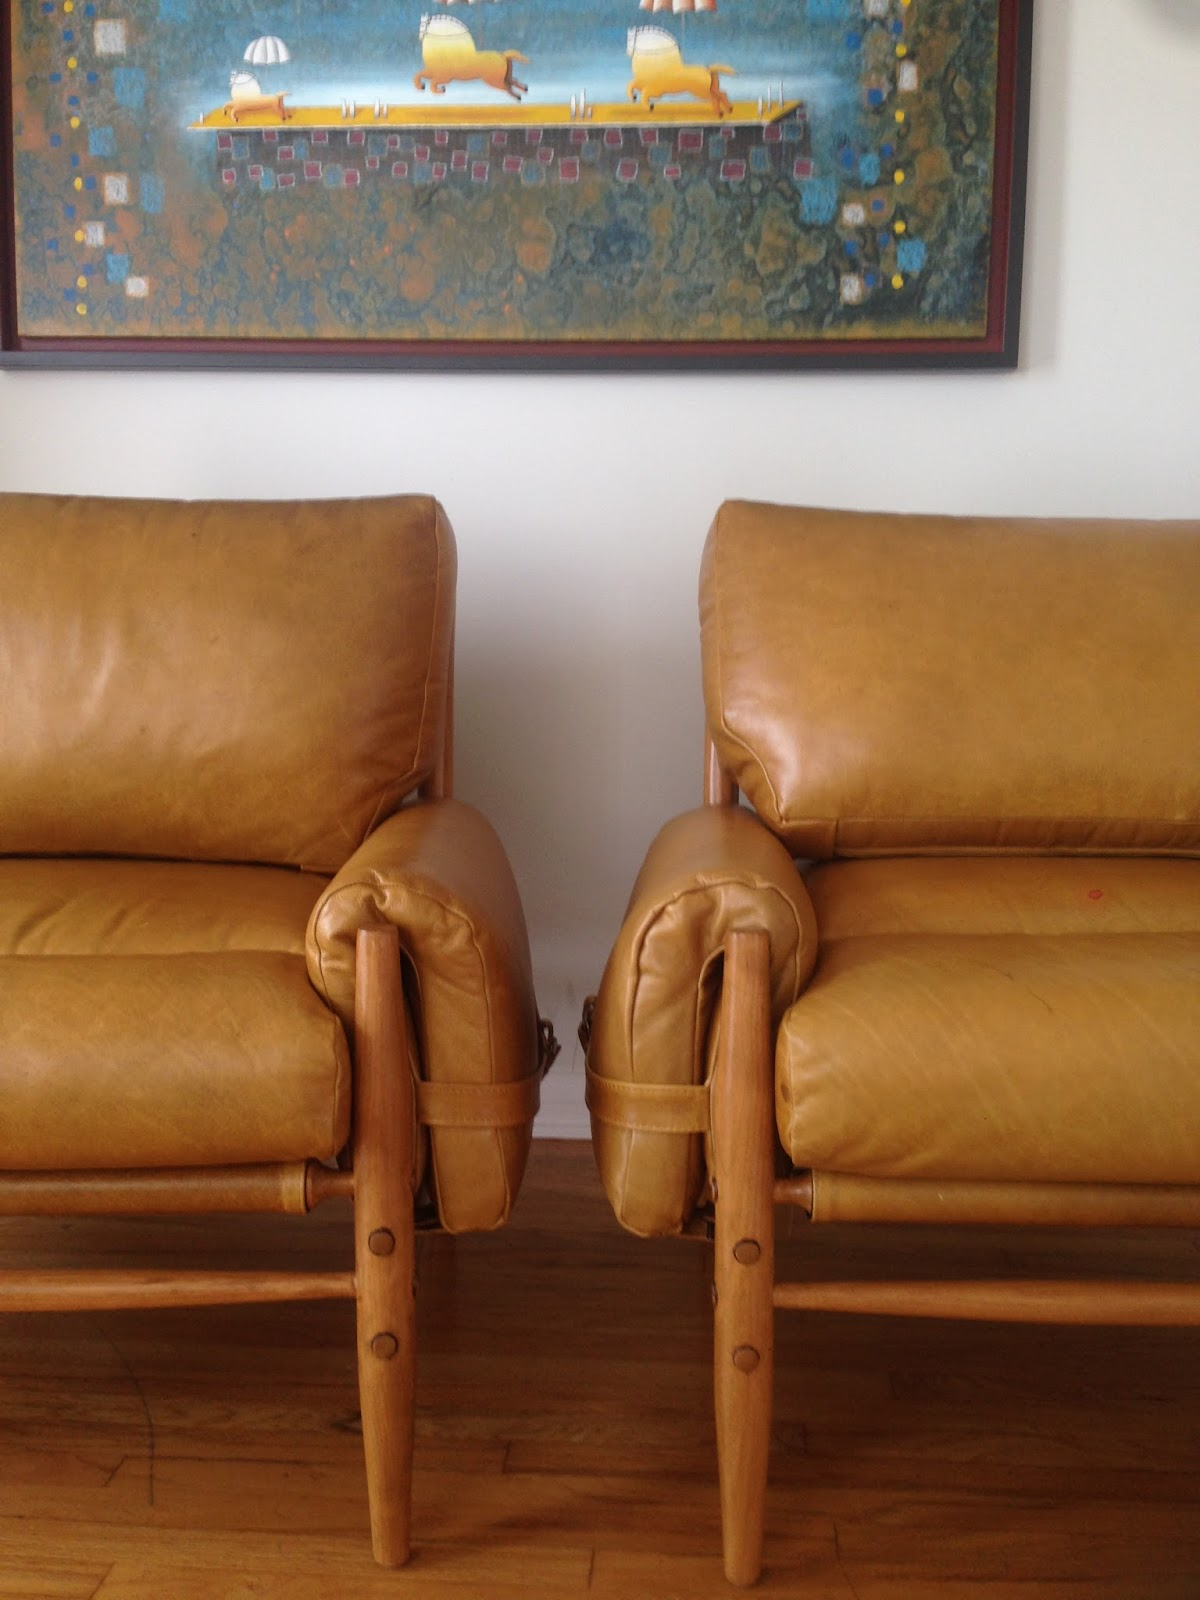 Meet Our Two Newest Home Additions: Our Tan Leather Chairs. What Was One Of  The Main Things I Took Into Consideration Before Purchasing Them For Our  Home?